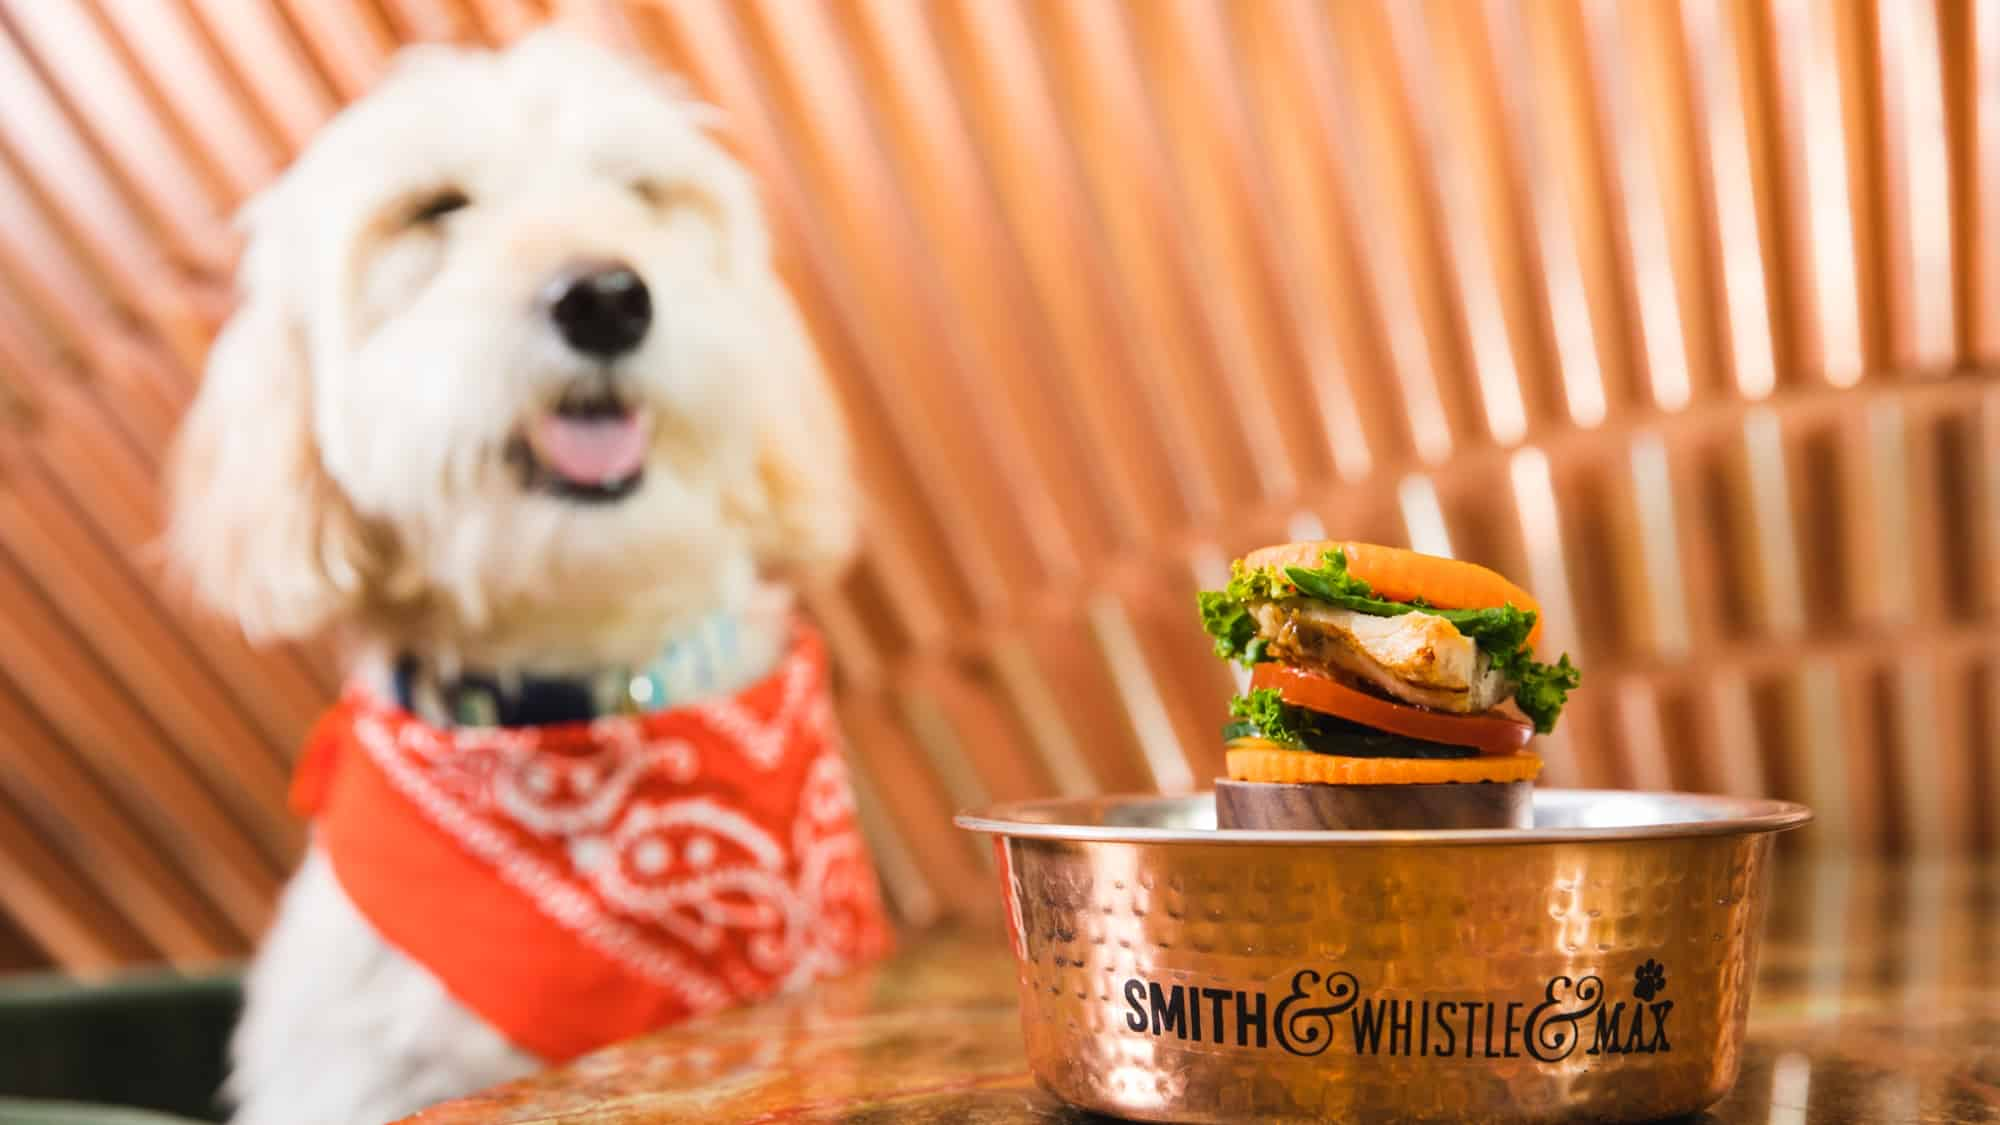 Smith & Whistle Dog Burger Weekend Celebrating National Burger Day & National Dog Day